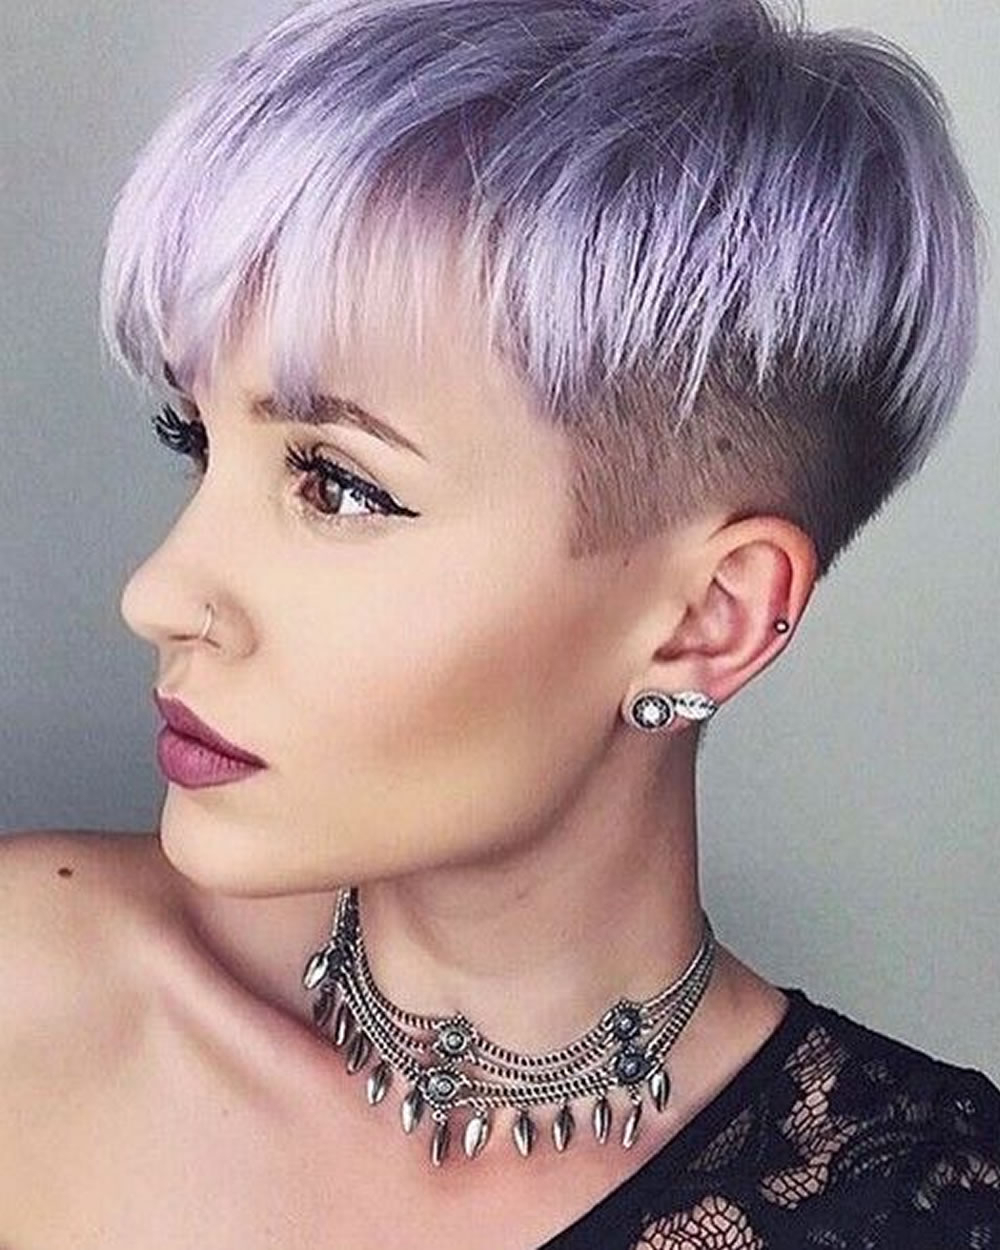 Feminine Extreme Short Haircuts For Ladies 2018 2019 – Page 2 Regarding Feminine Short Haircuts (View 2 of 25)